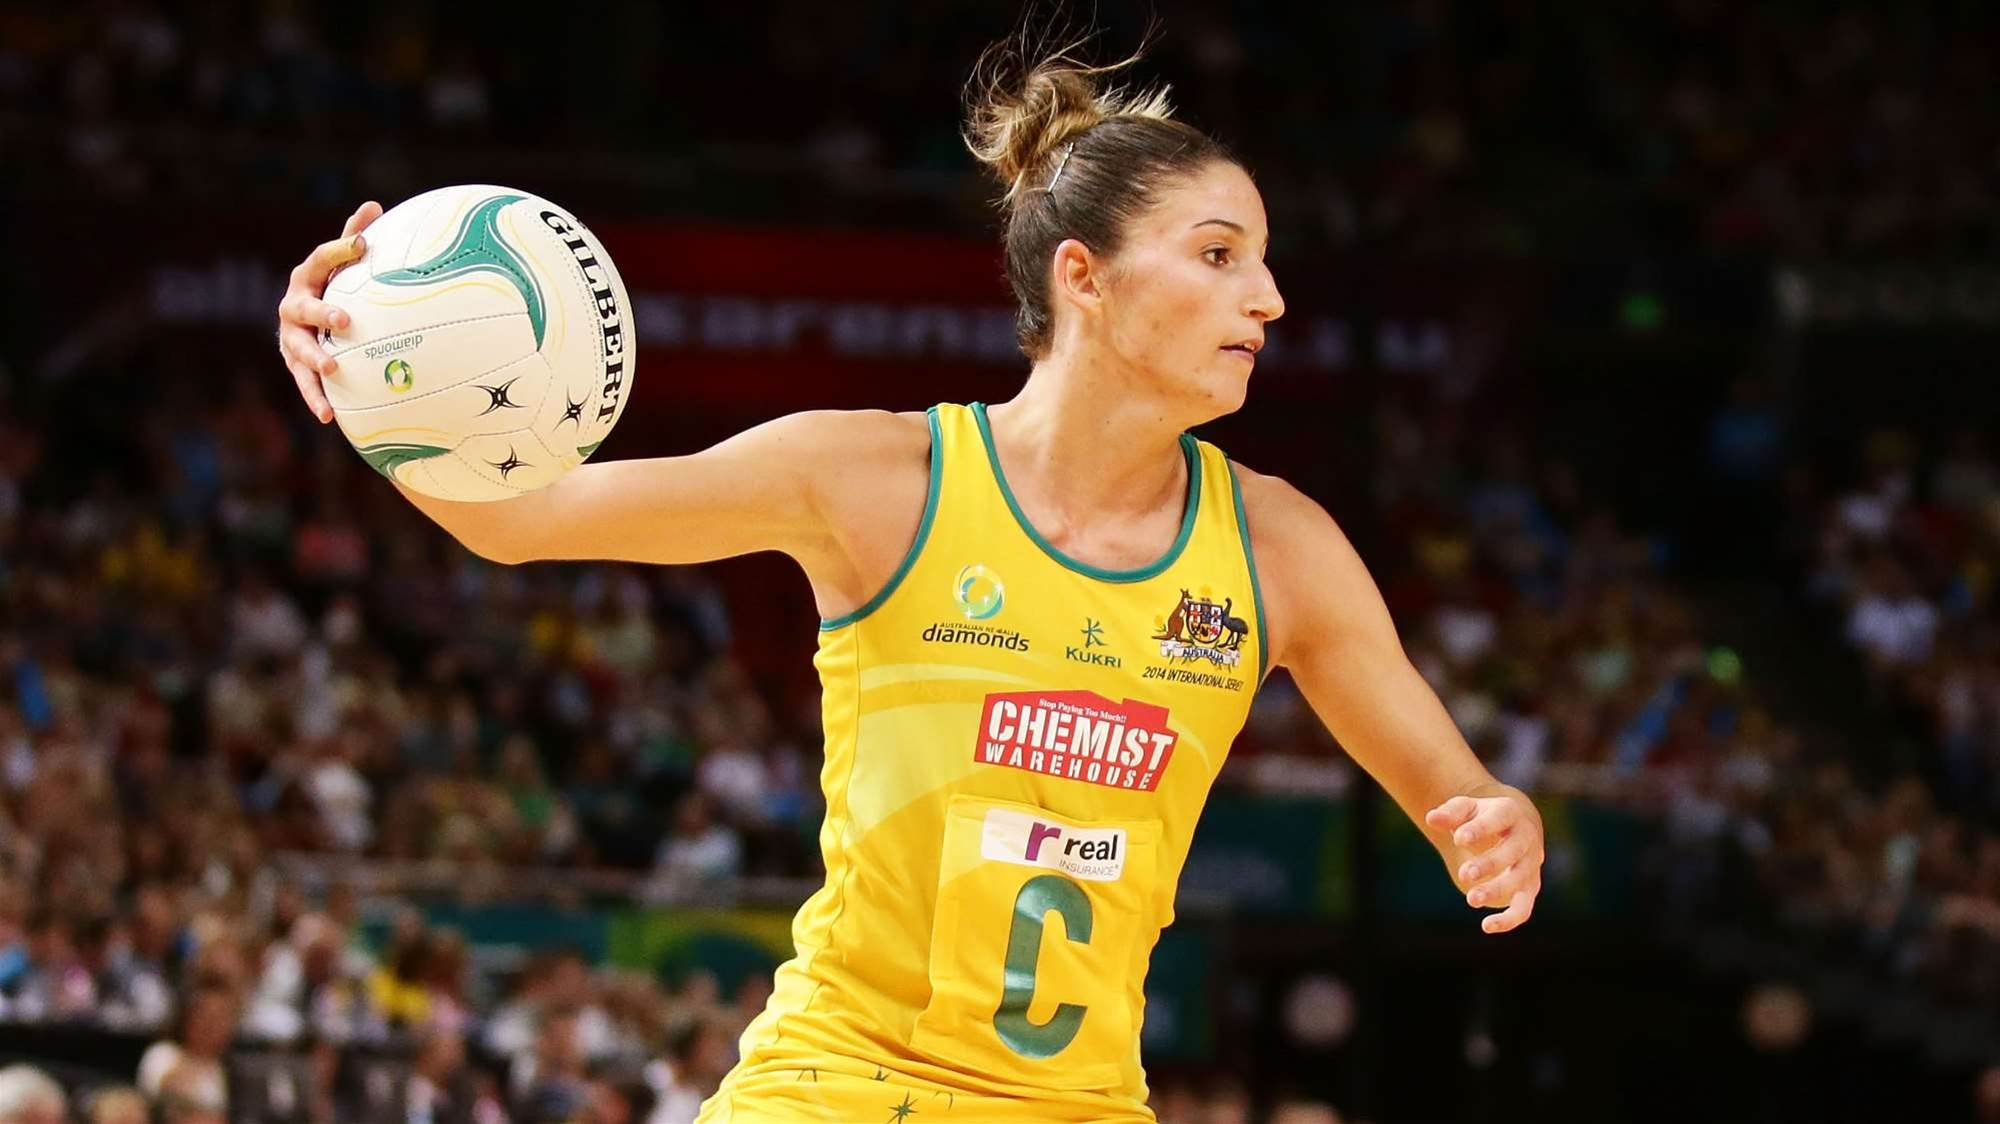 'I knew I wanted to be a personal trainer and netballer'